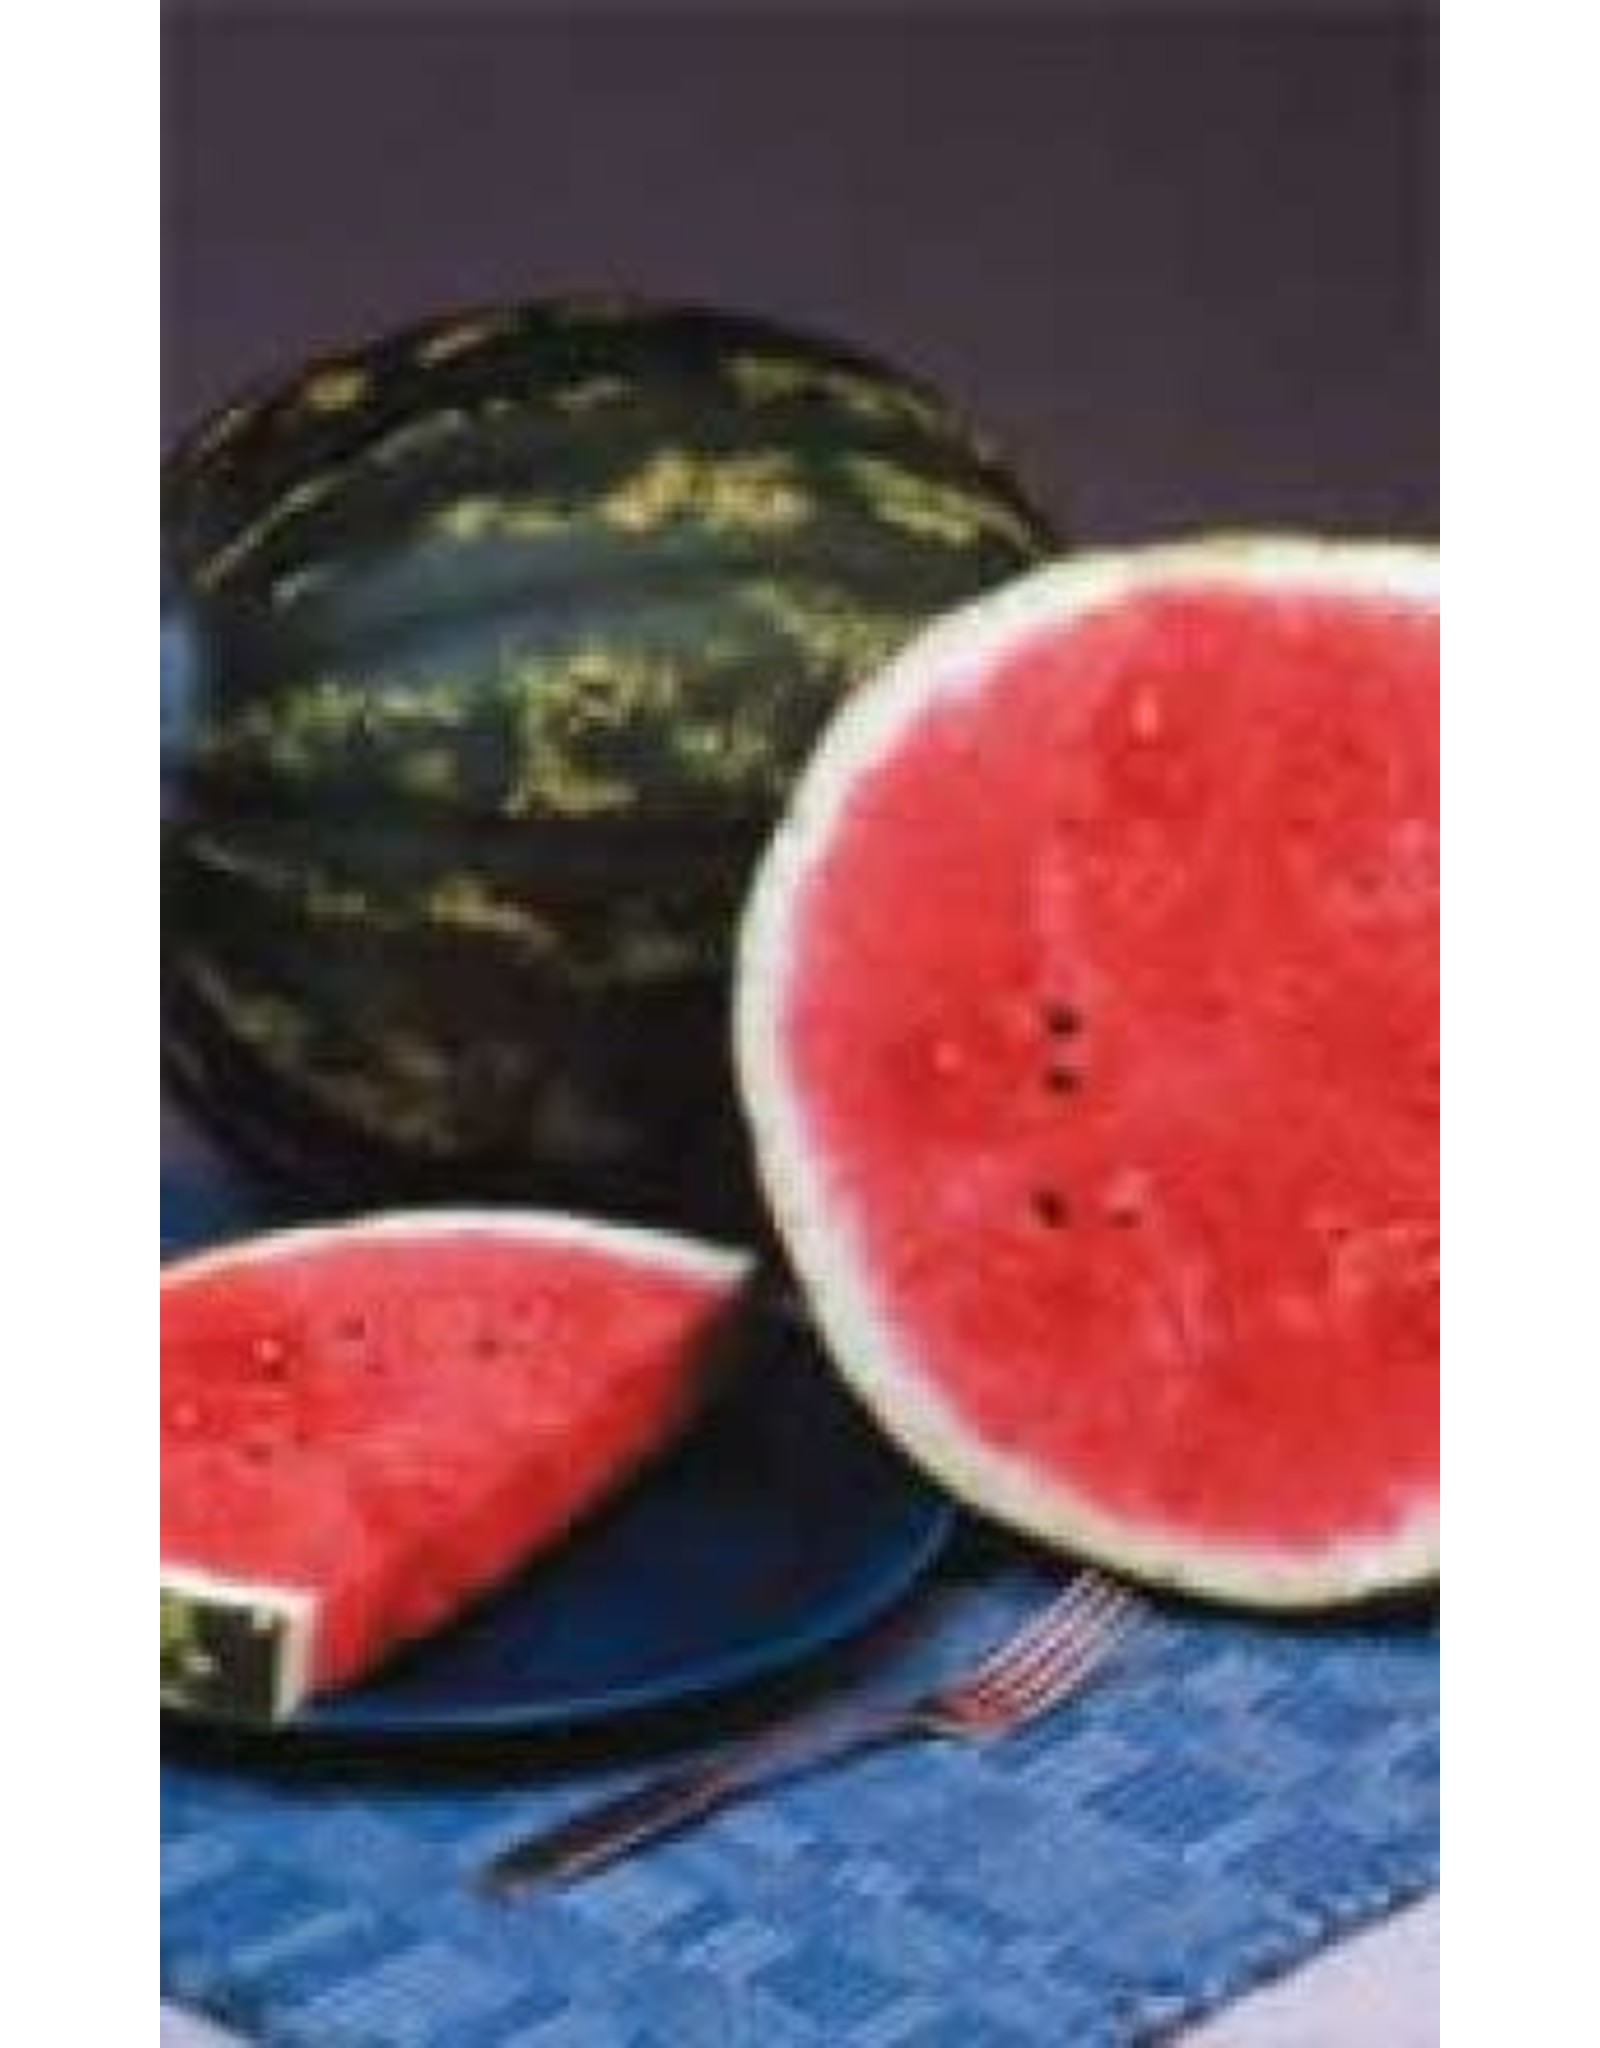 Crimson Sweet Watermelon Seeds 2410